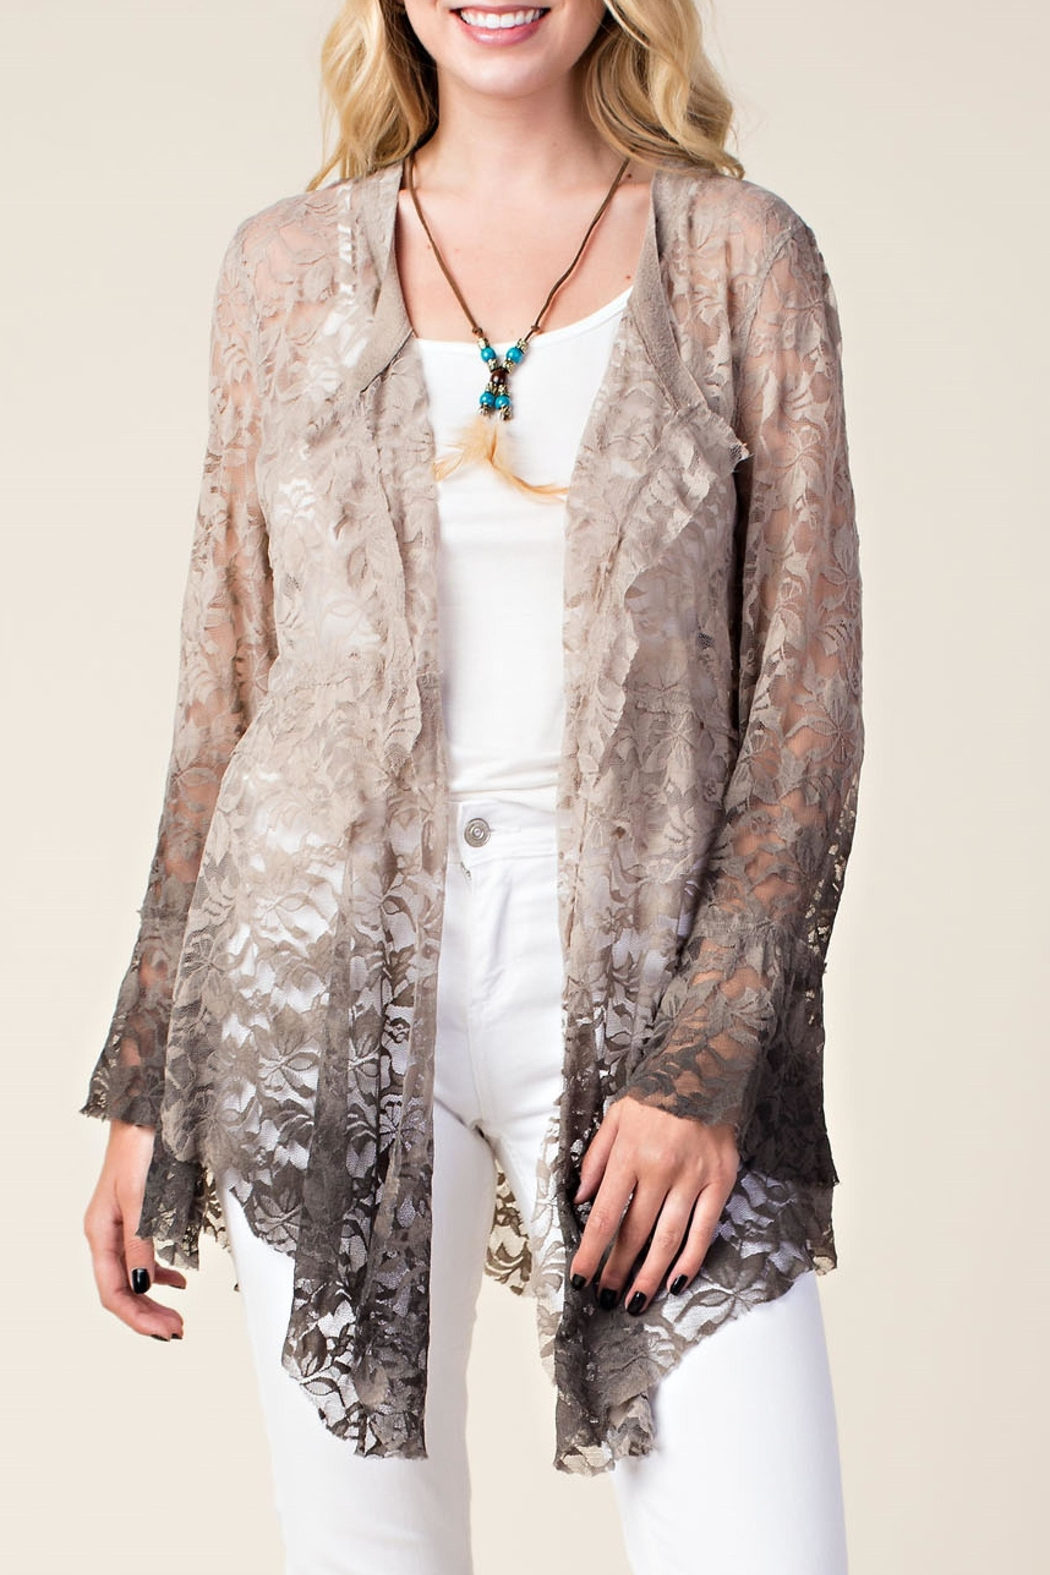 Vocal Apparel Ombre Lace Cardigan - Main Image